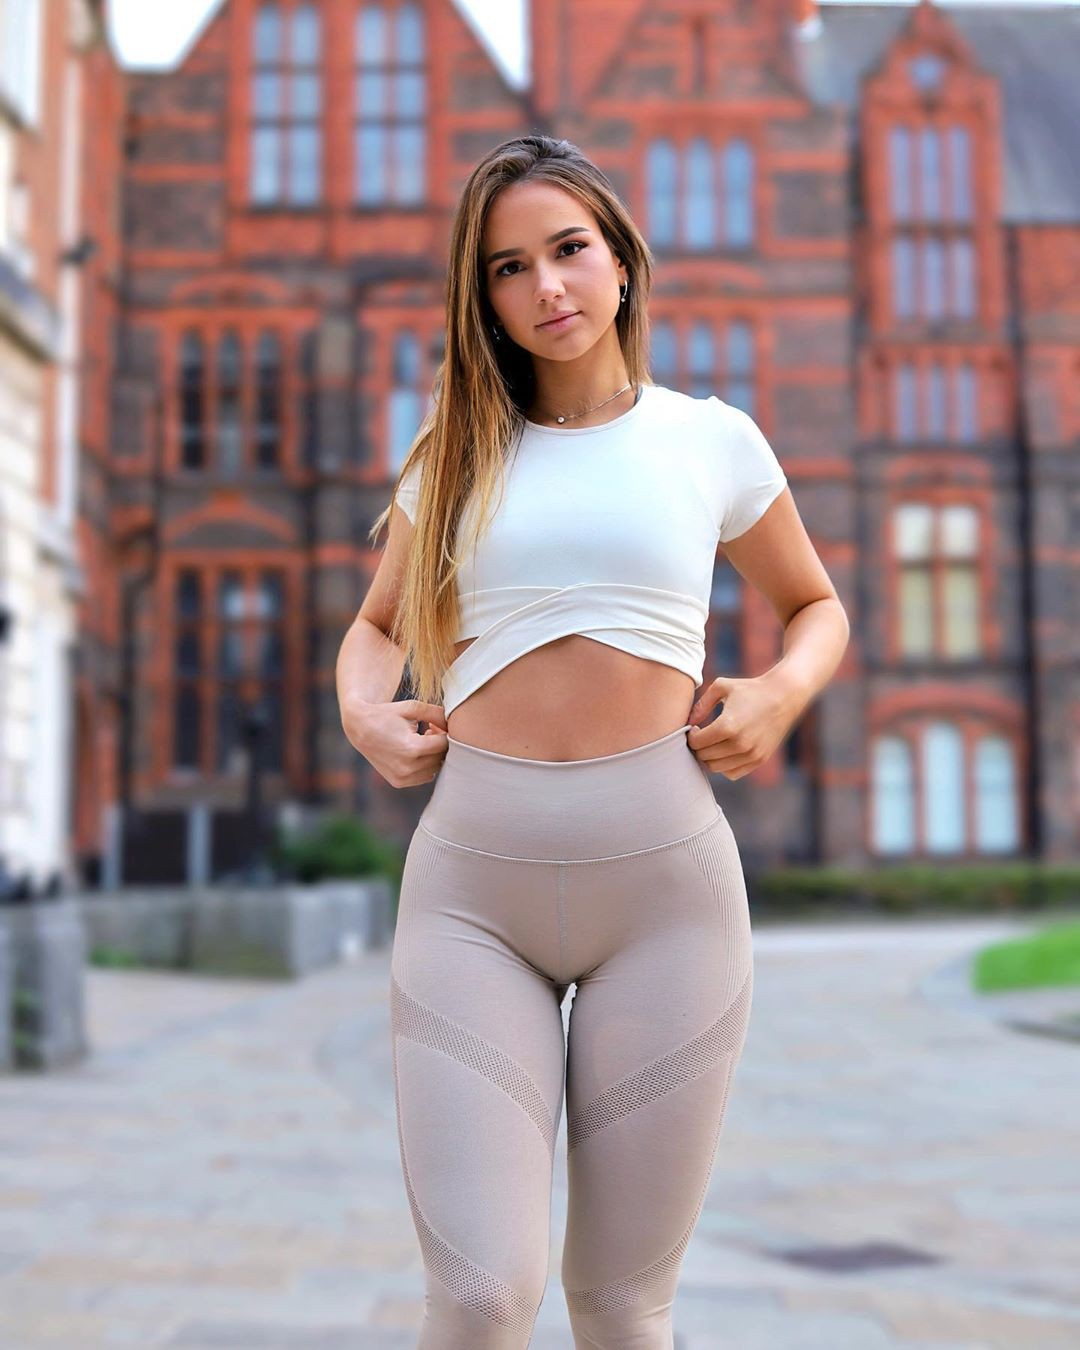 white outfits for women with active pants, sportswear, leggings